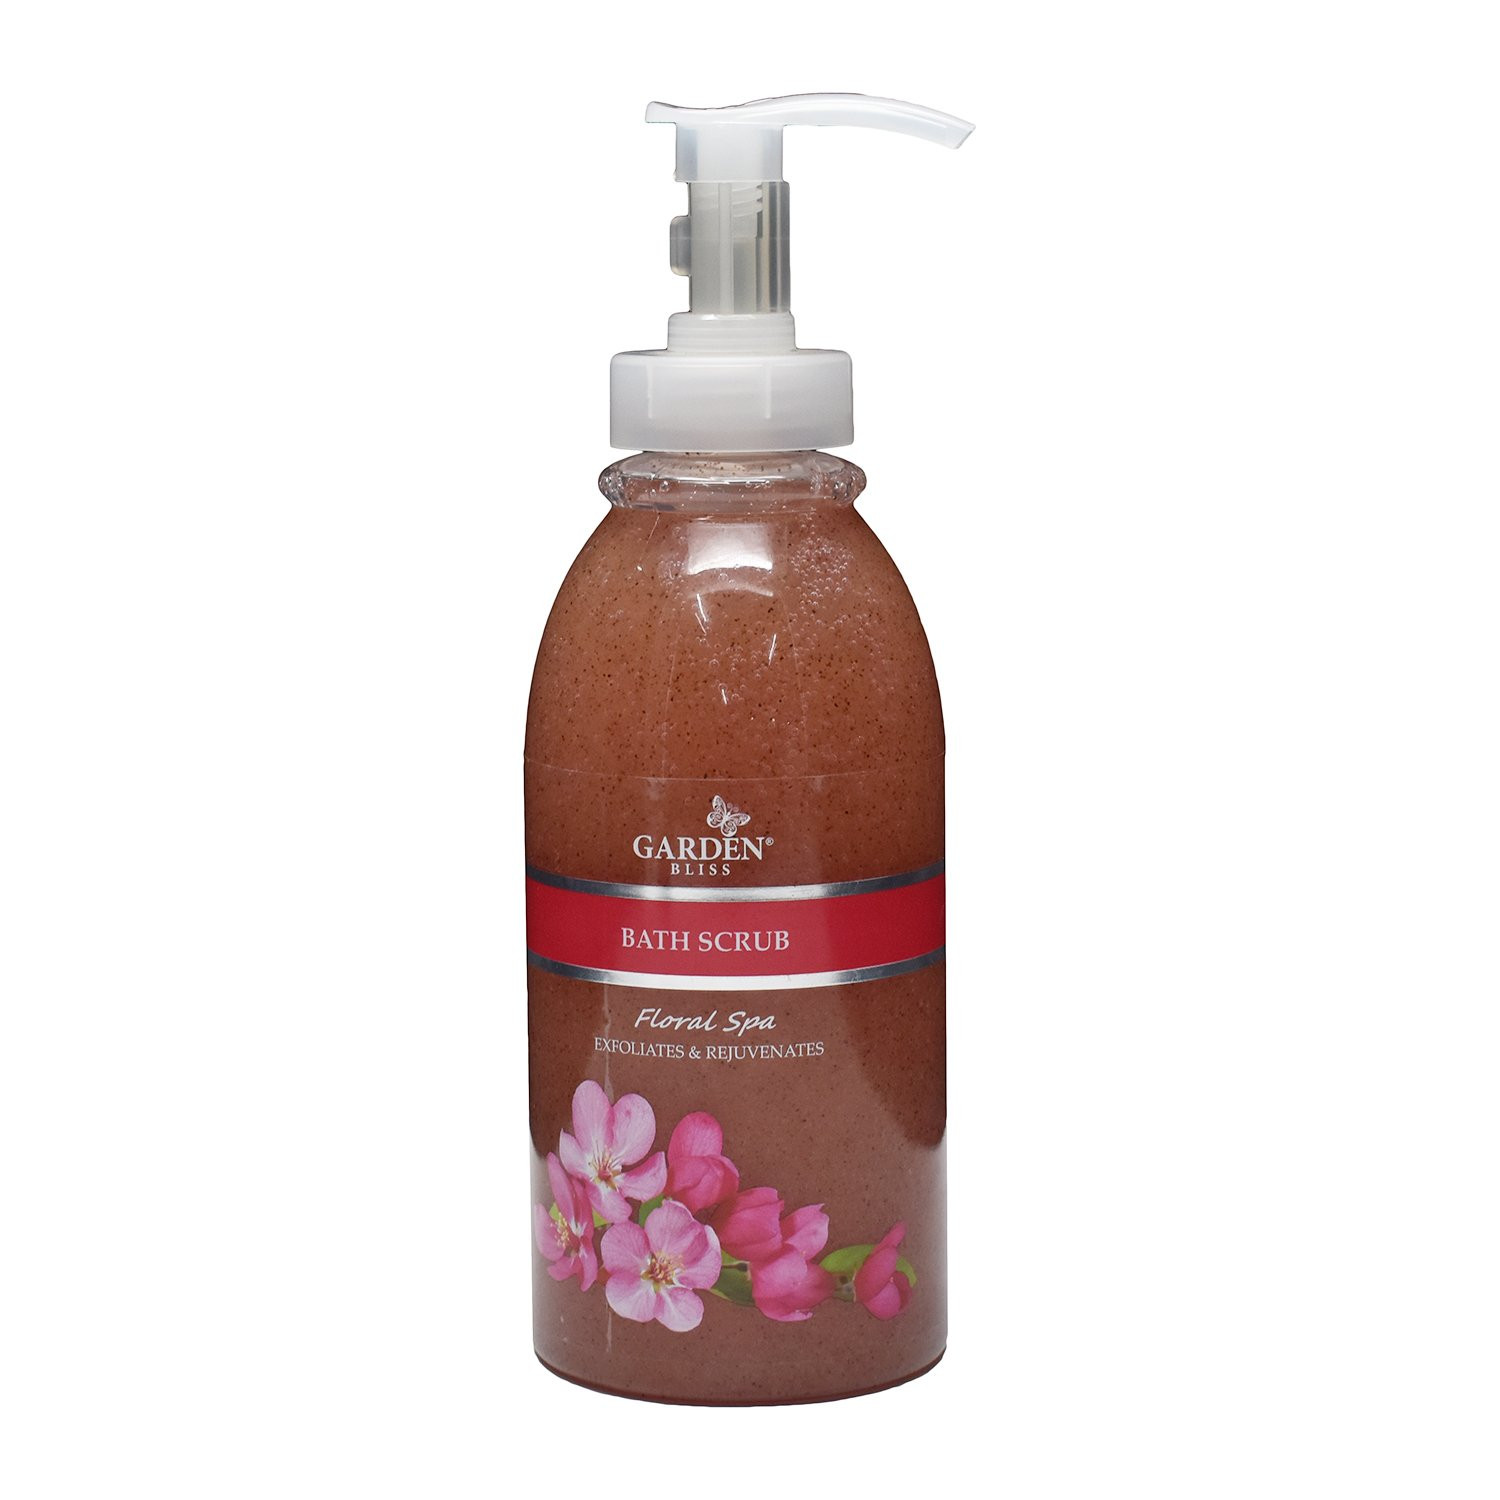 Garden Bliss Floral Spa Bath Scrub 750ml